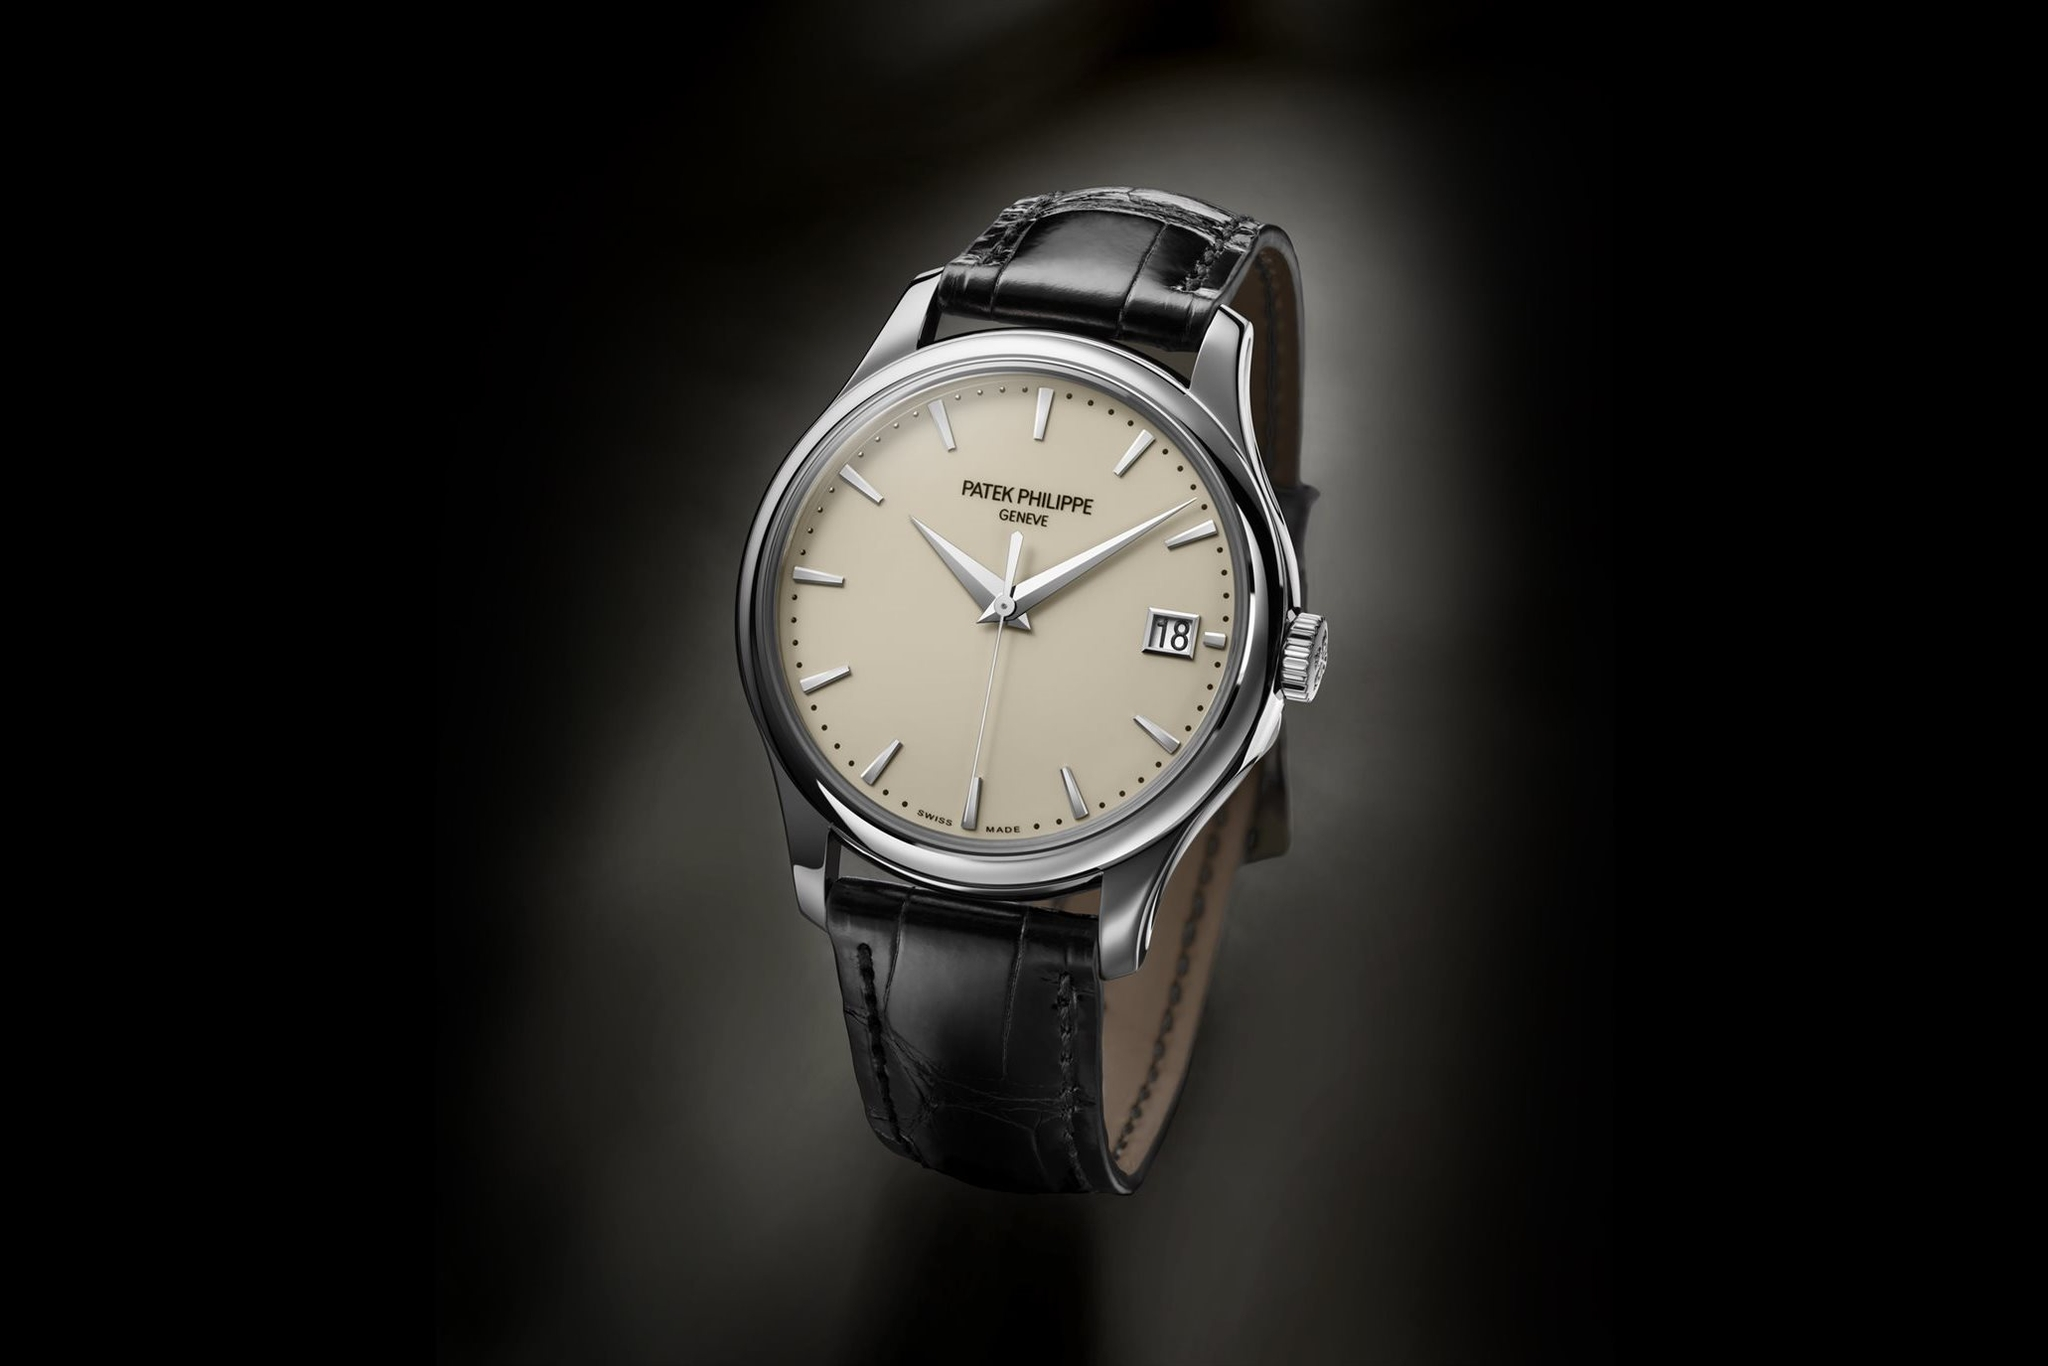 ĐỒNG HỒ PATEK PHILIPPER CALATRAVA 5227G DATE, SWEEP SECONDS